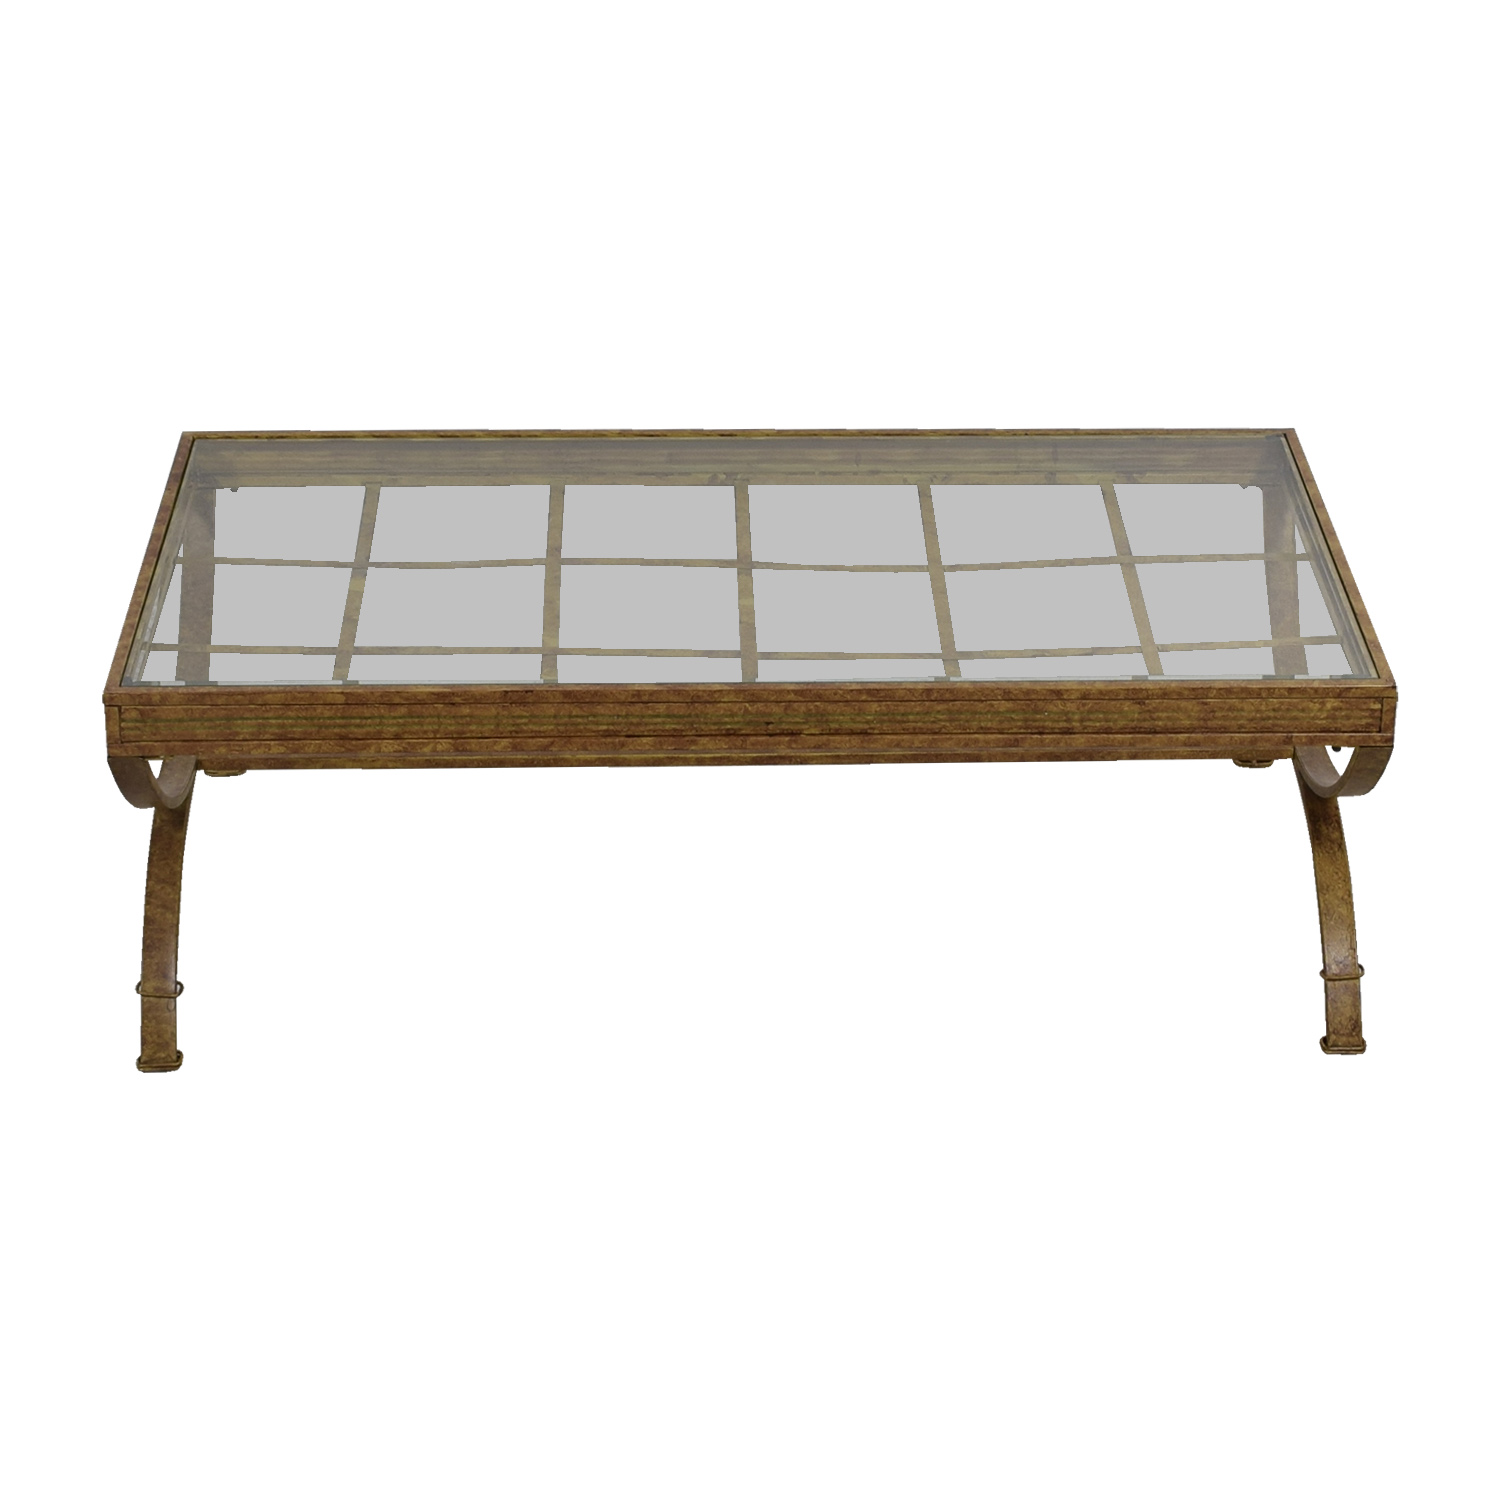 shop Bobs Furniture Rustic Glass Coffee Table Bobs Furniture